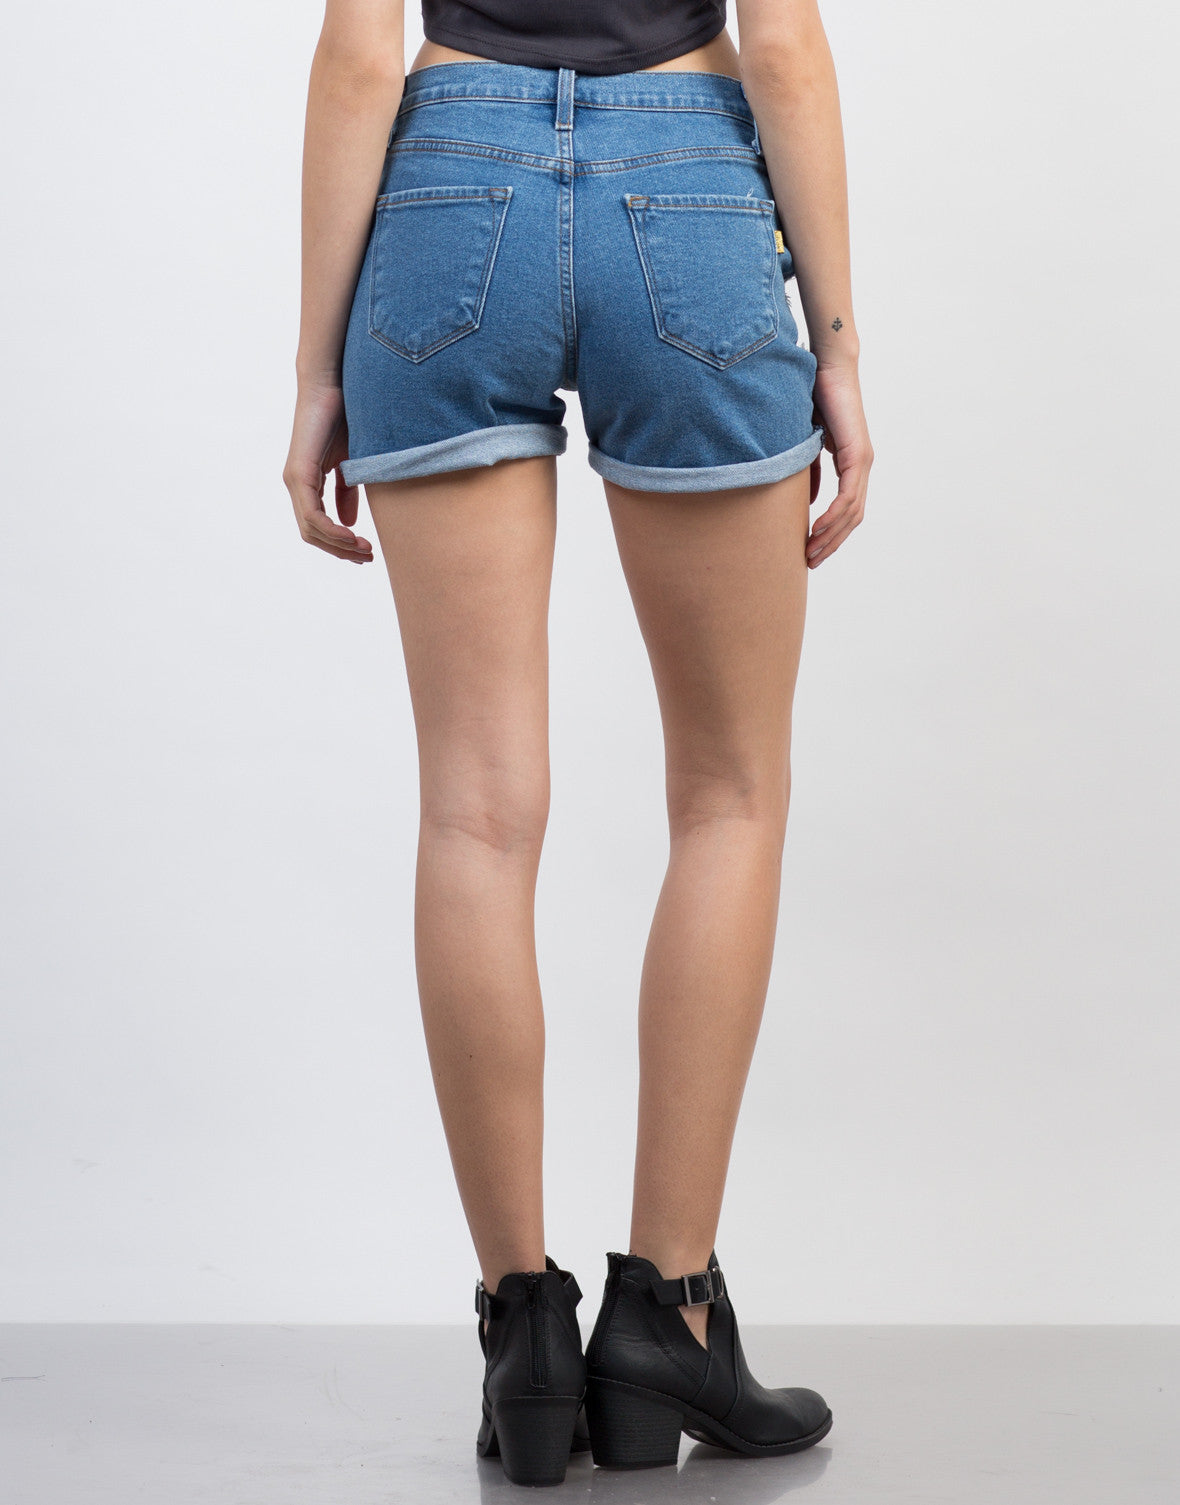 Back View of High Waist BF Denim Shorts